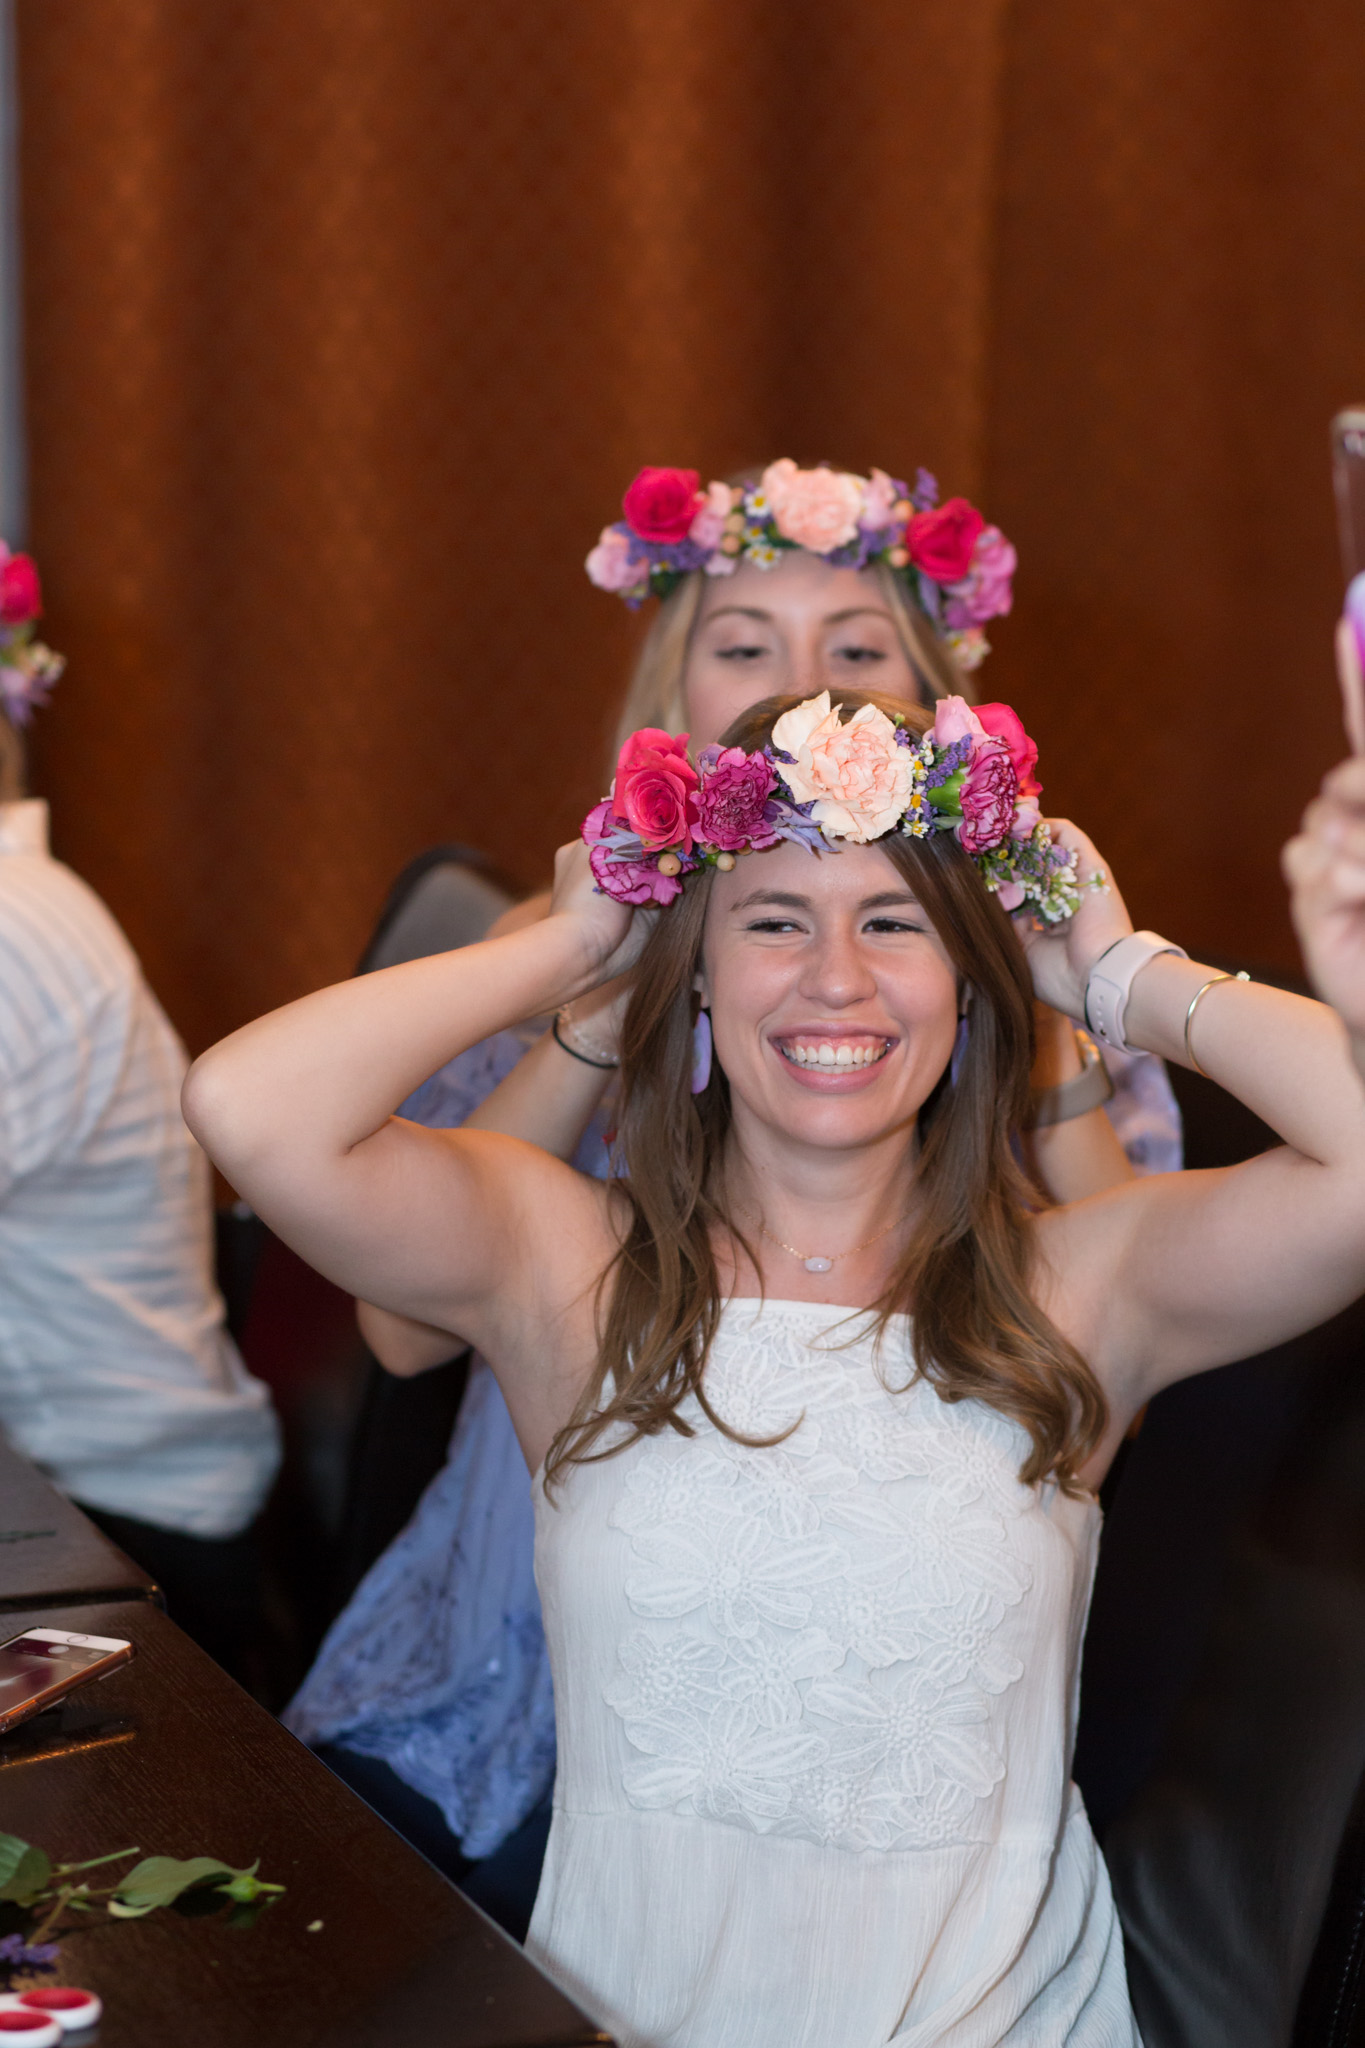 WEB Evie Morgan Events Flower Crown Party -134.jpg